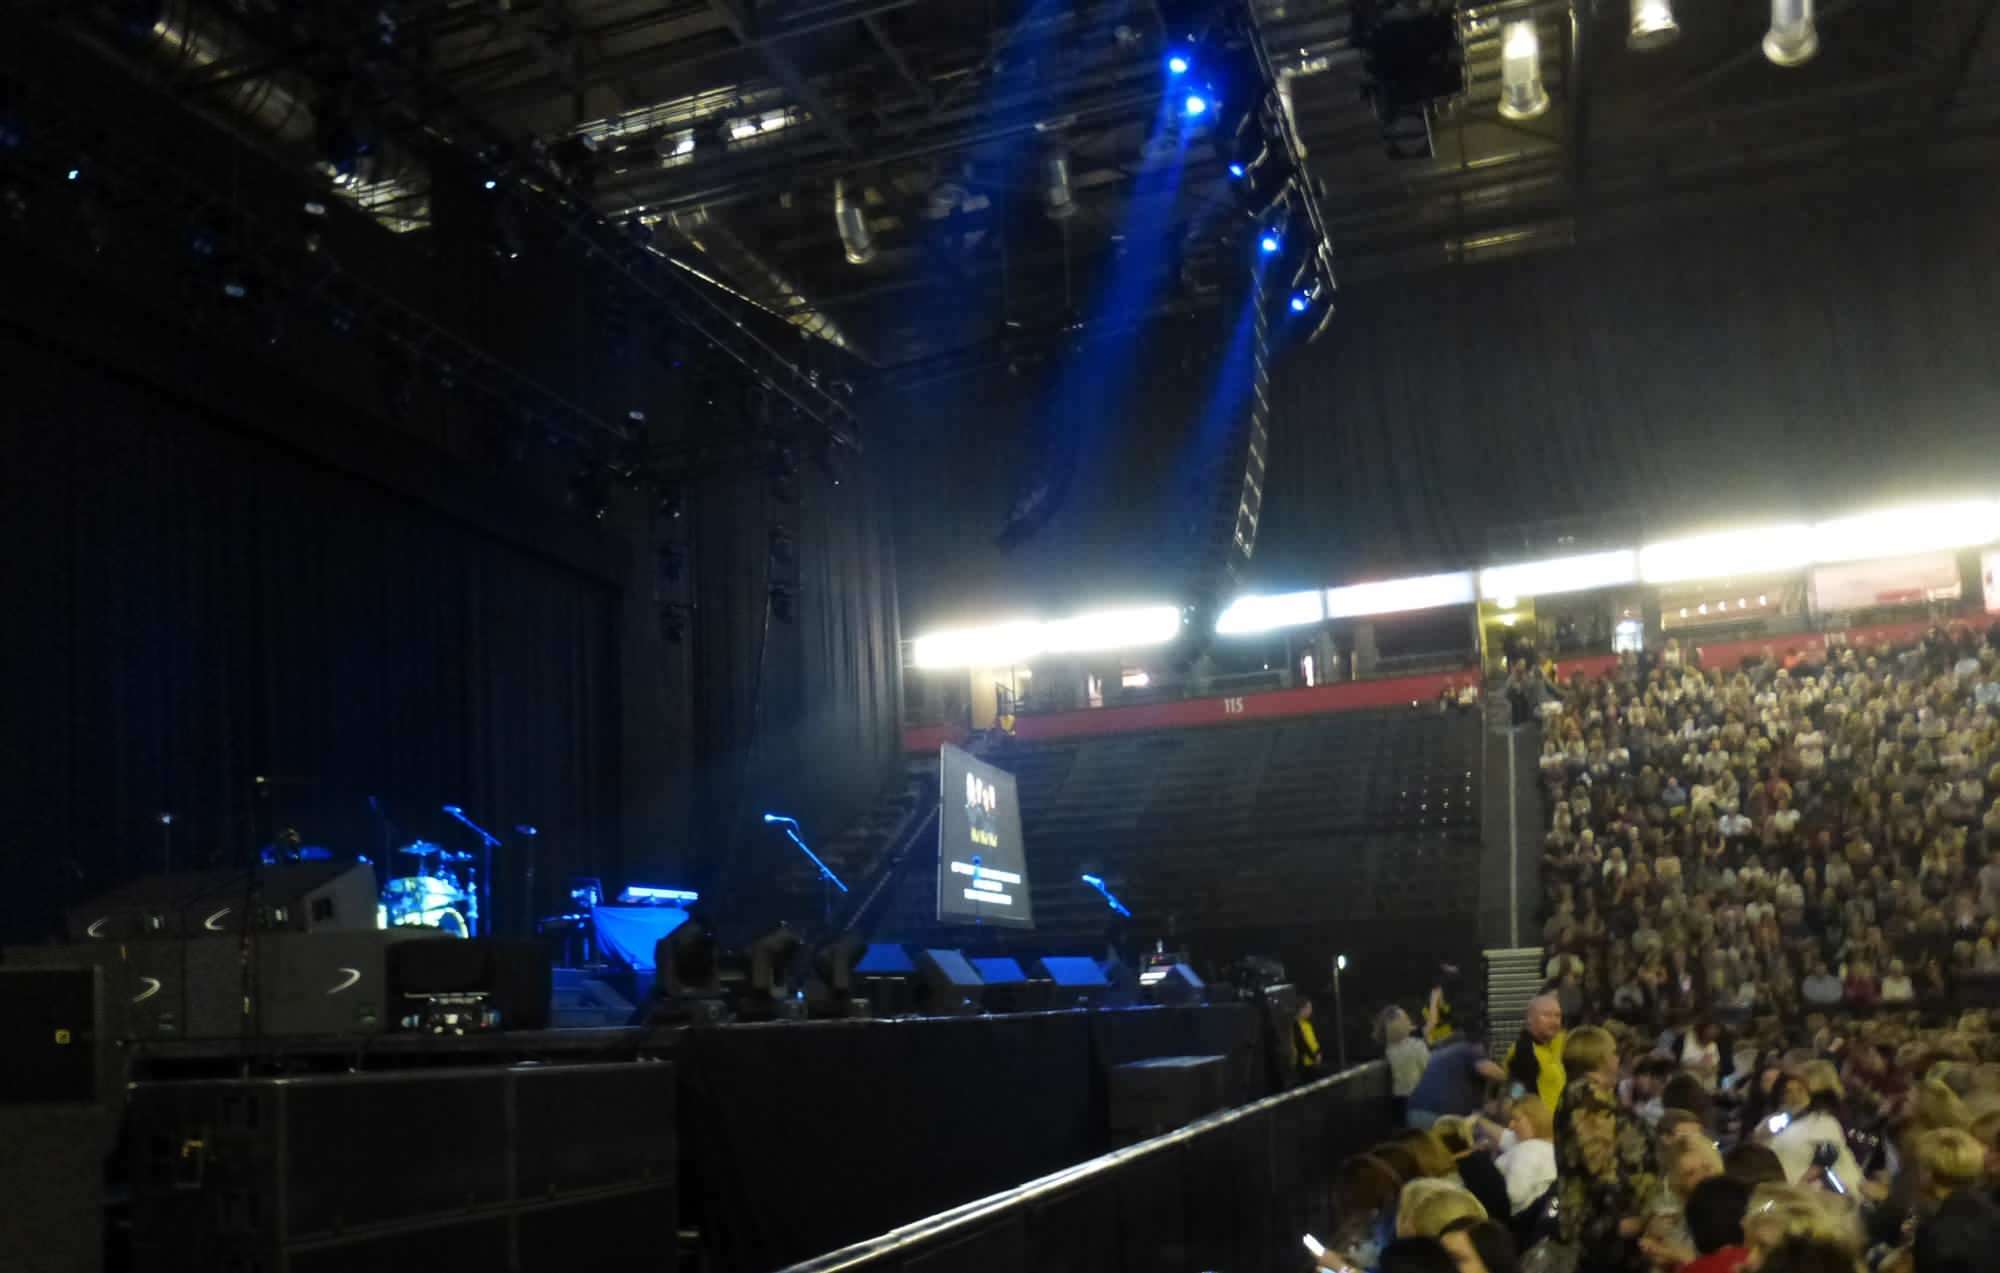 View from Seat Block 102 at Manchester Arena